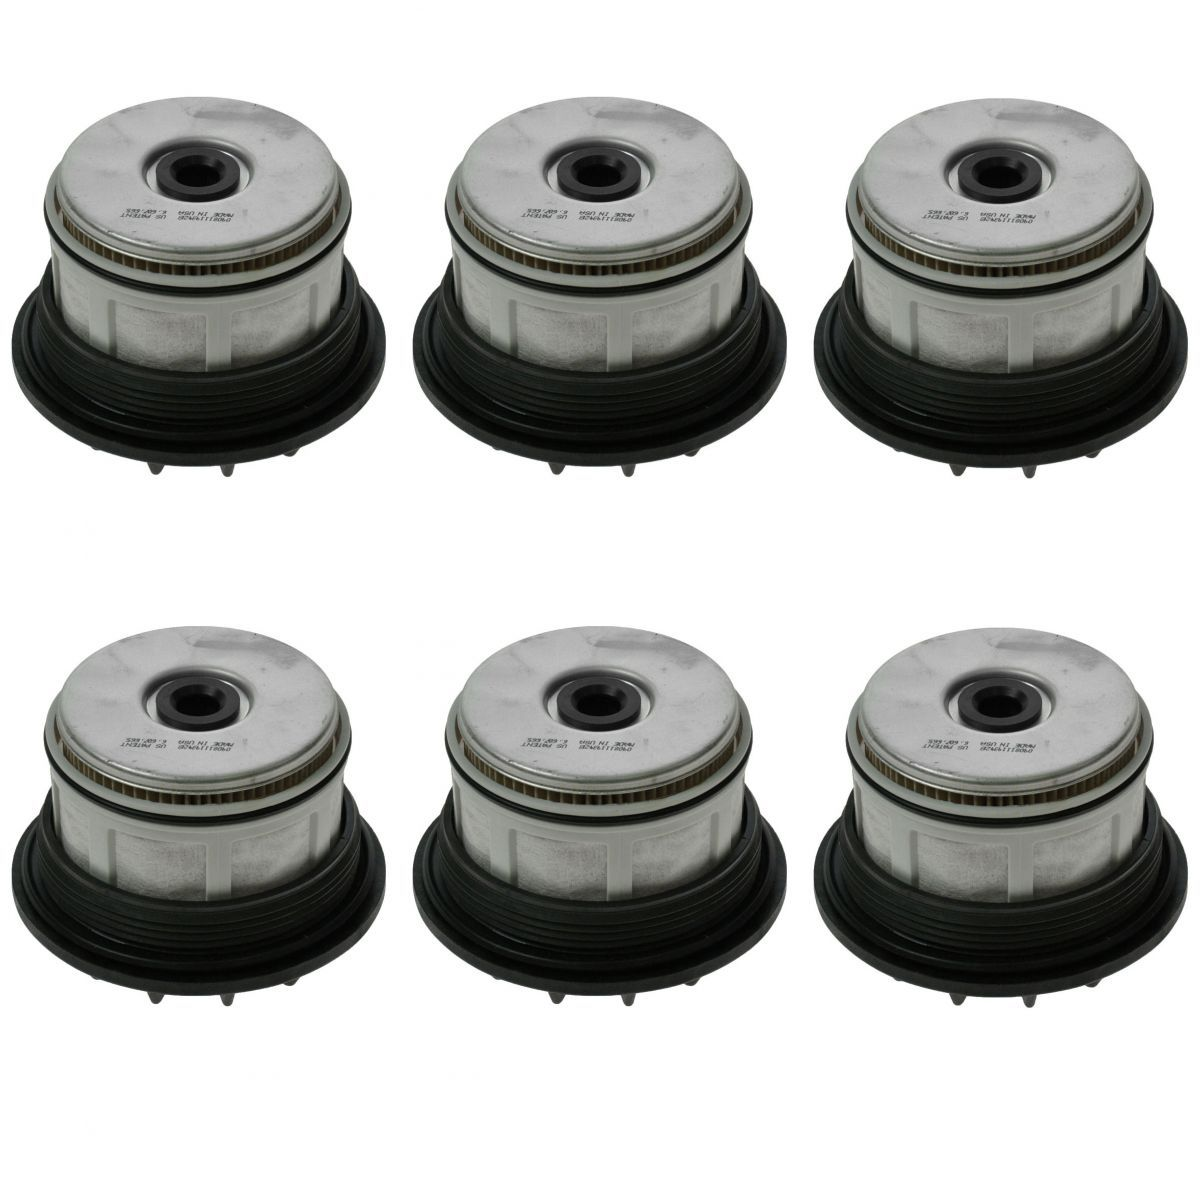 fuel filter set of 6 for ford f250 f350 super duty van 7. Black Bedroom Furniture Sets. Home Design Ideas